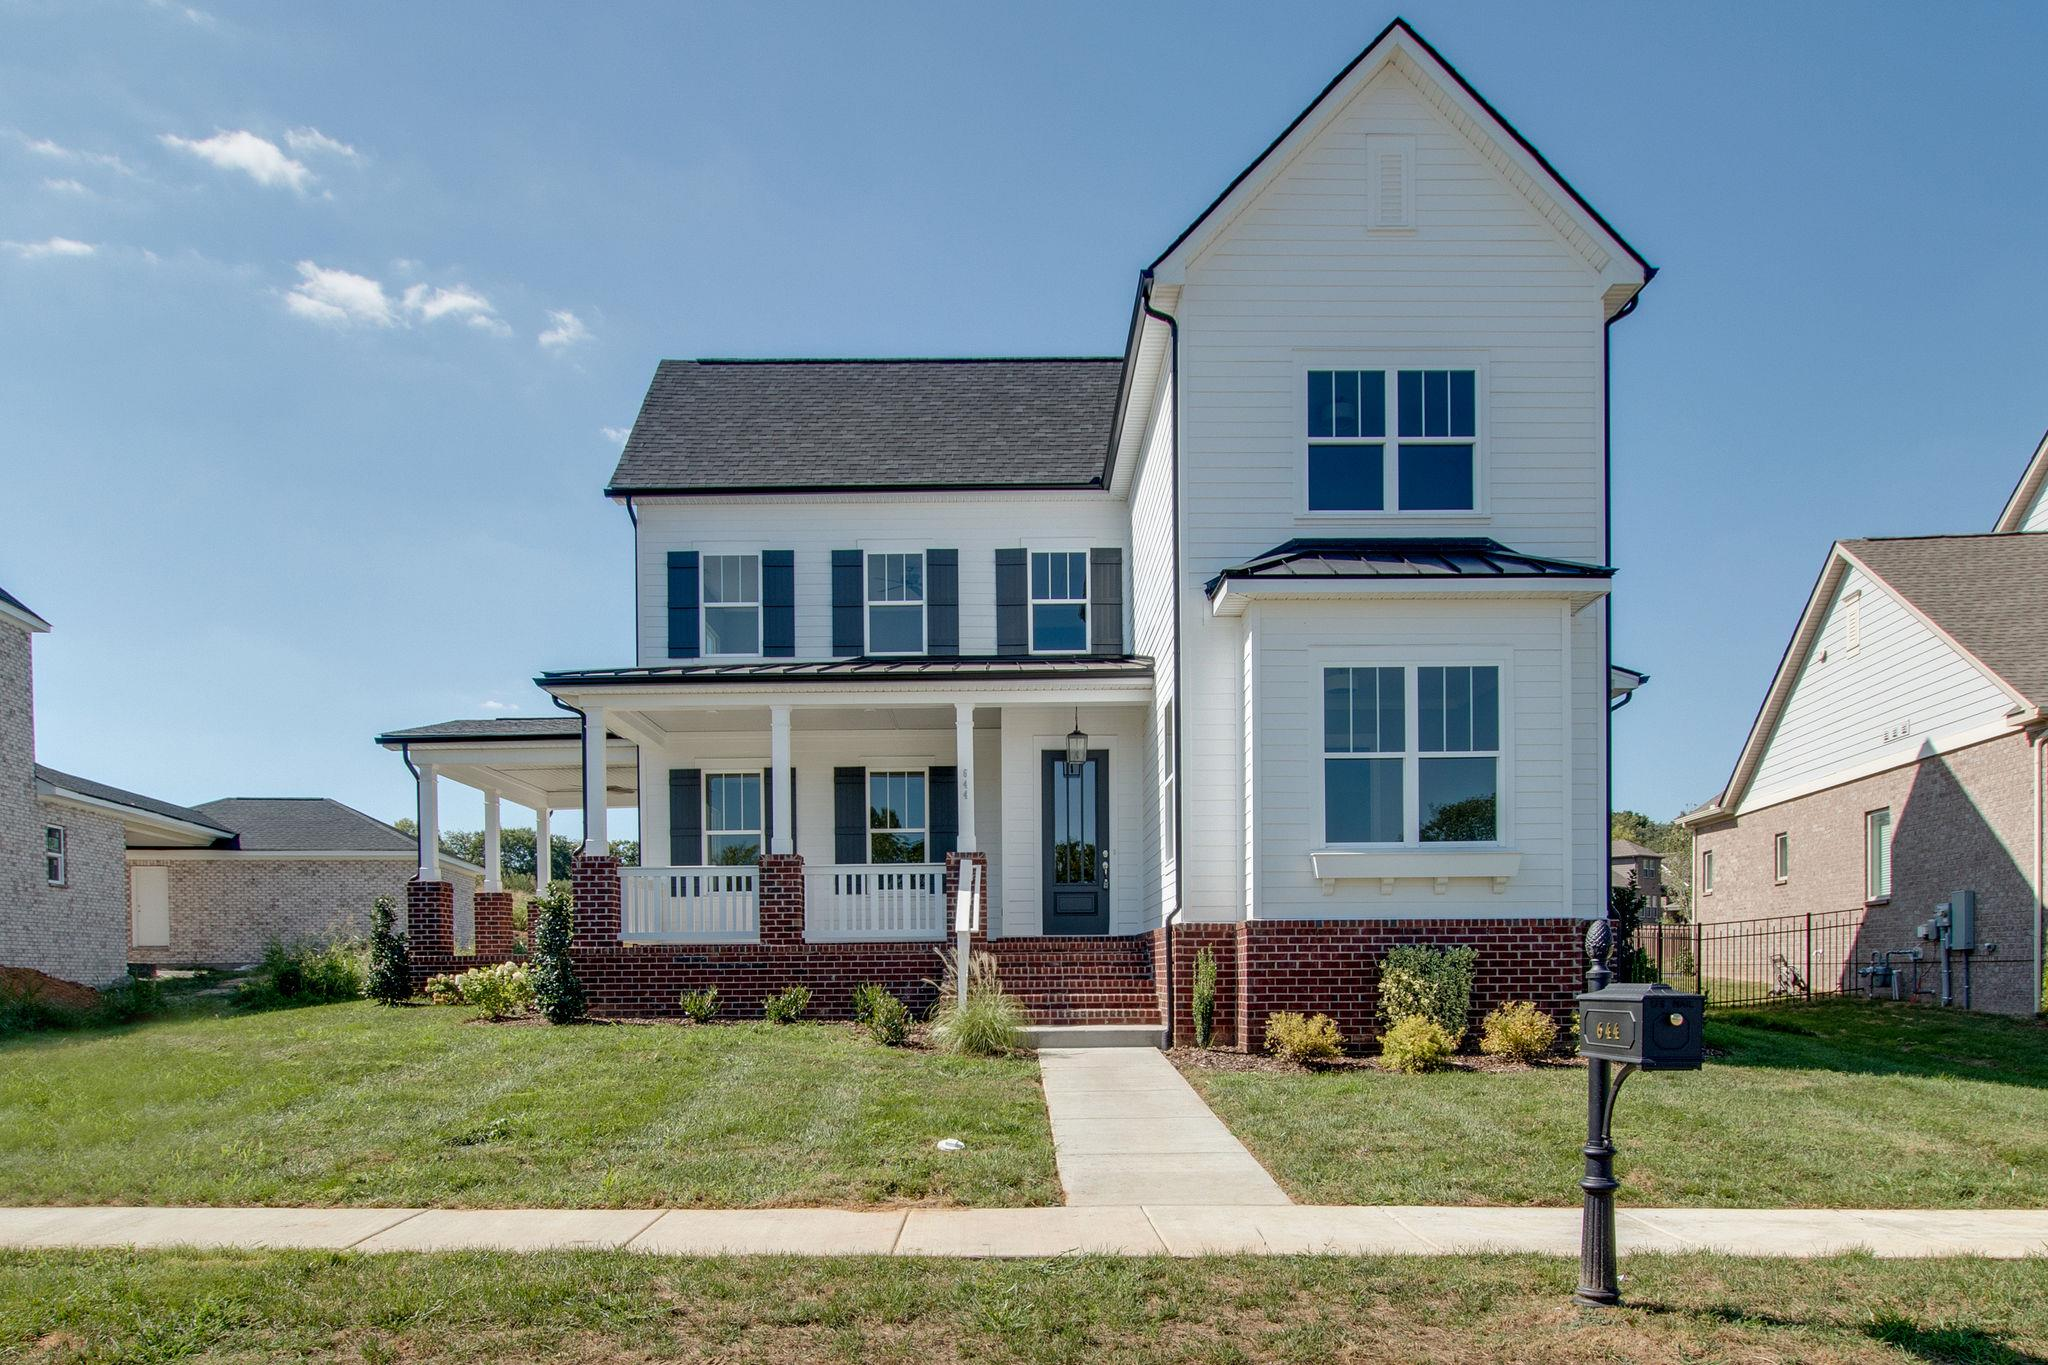 644 Vickery Park Dr 37135 - One of Nolensville Homes for Sale